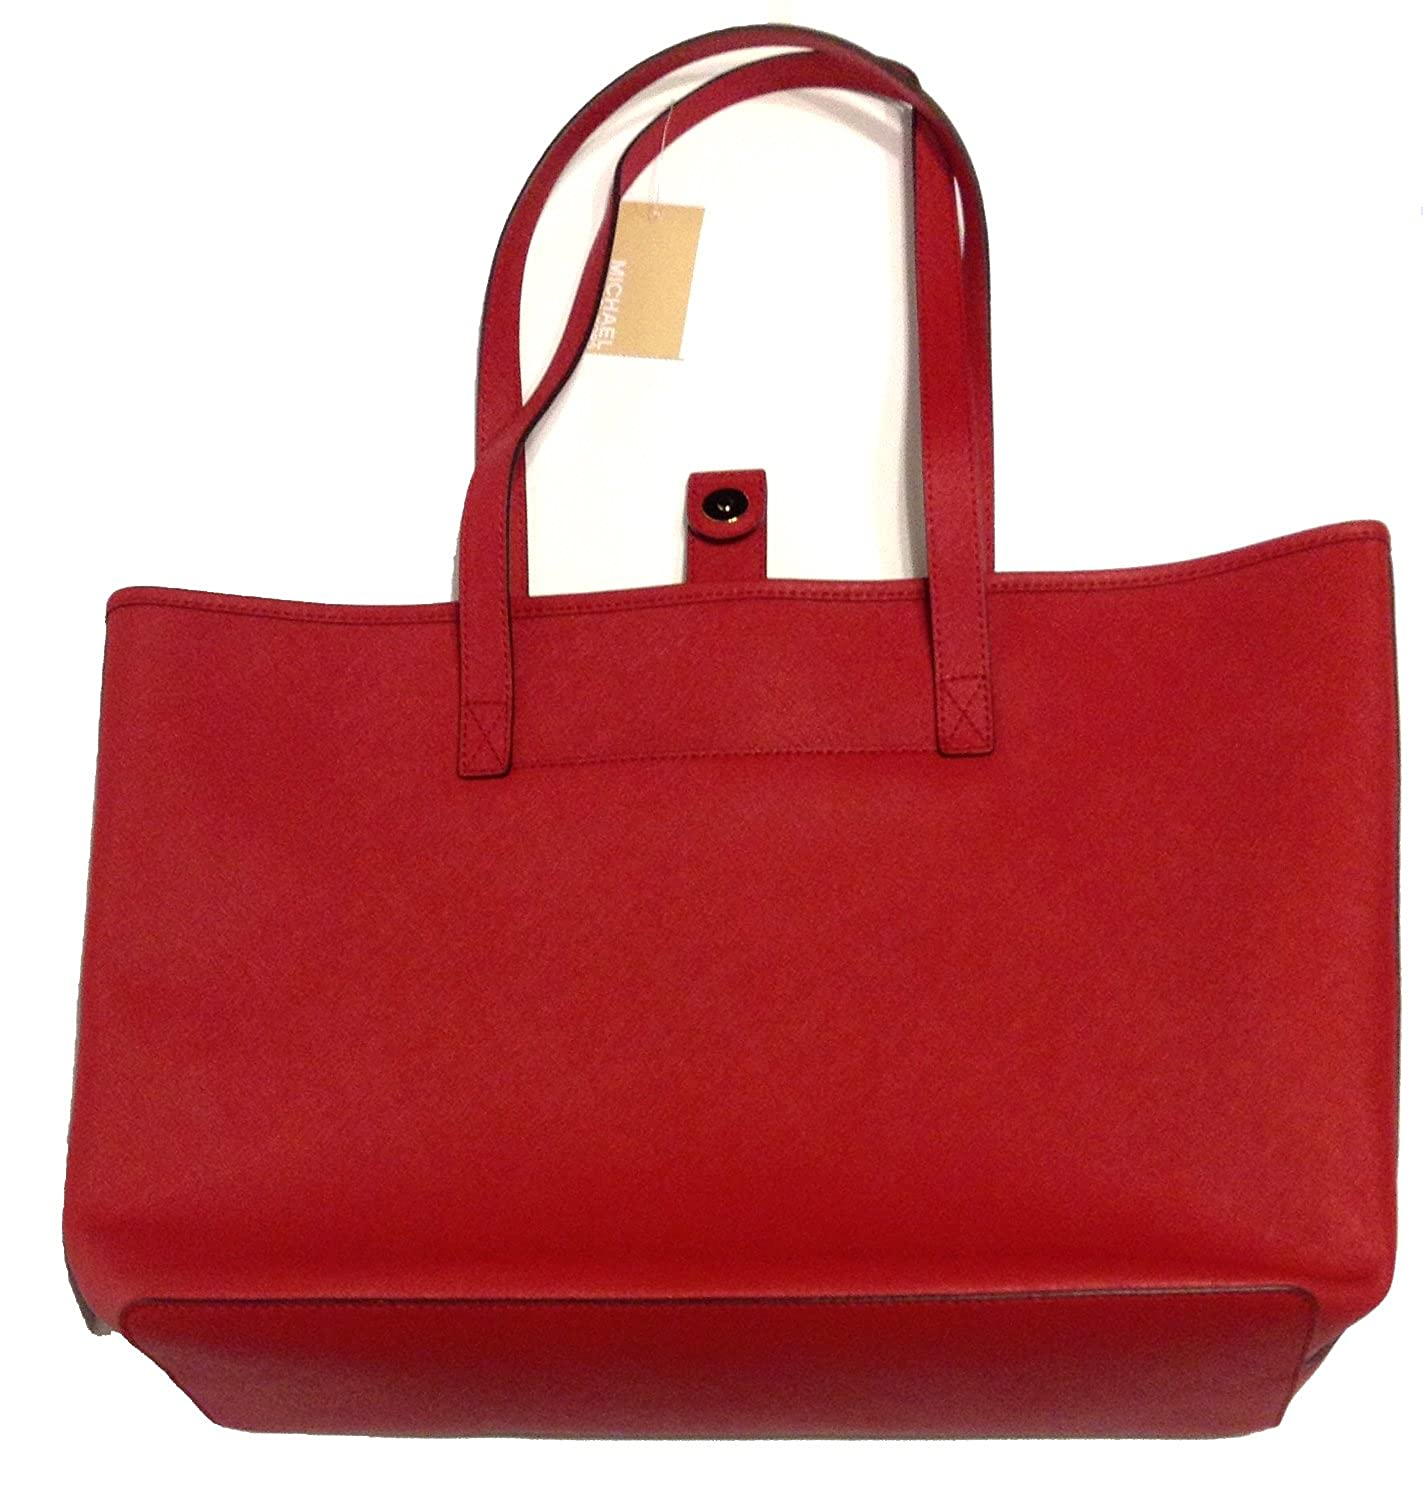 df99e522027a39 Amazon.com: Michael Kors Jet Set Travel Medium Leather Tote Red: Shoes